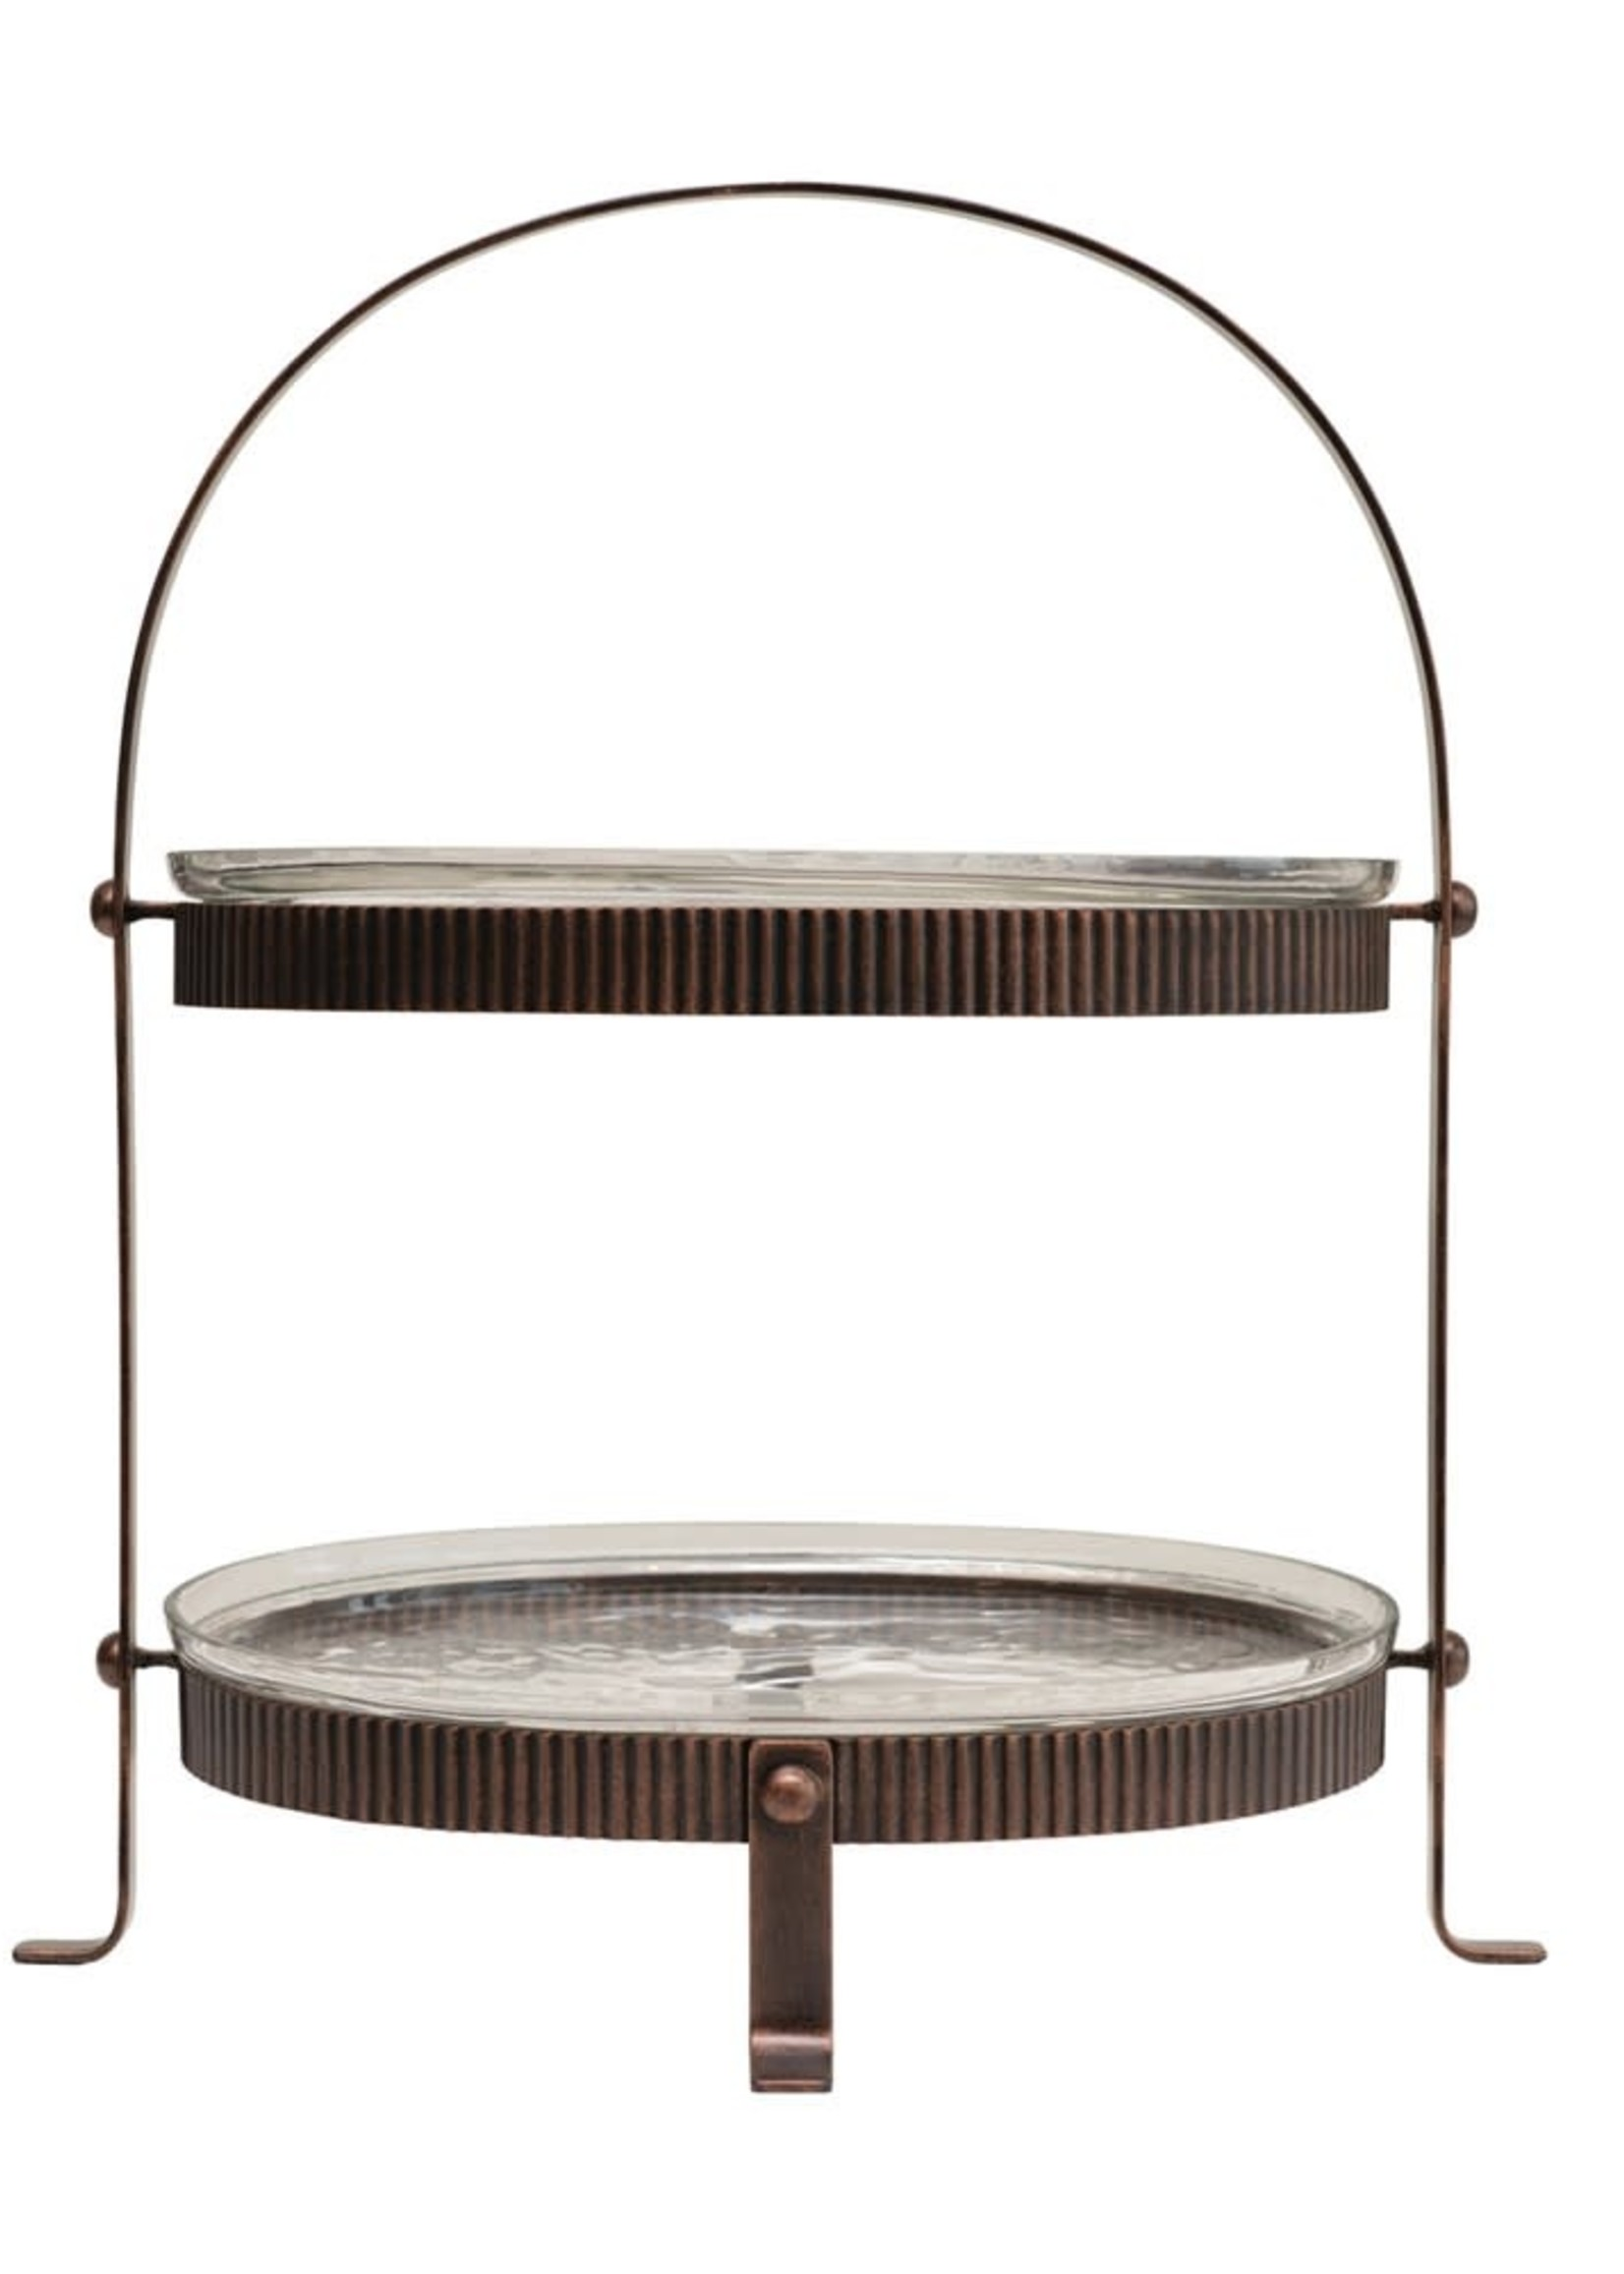 Metal Oval 2-Tier Stand with 2 Glass Trays, Bronze Finish, Set of 3